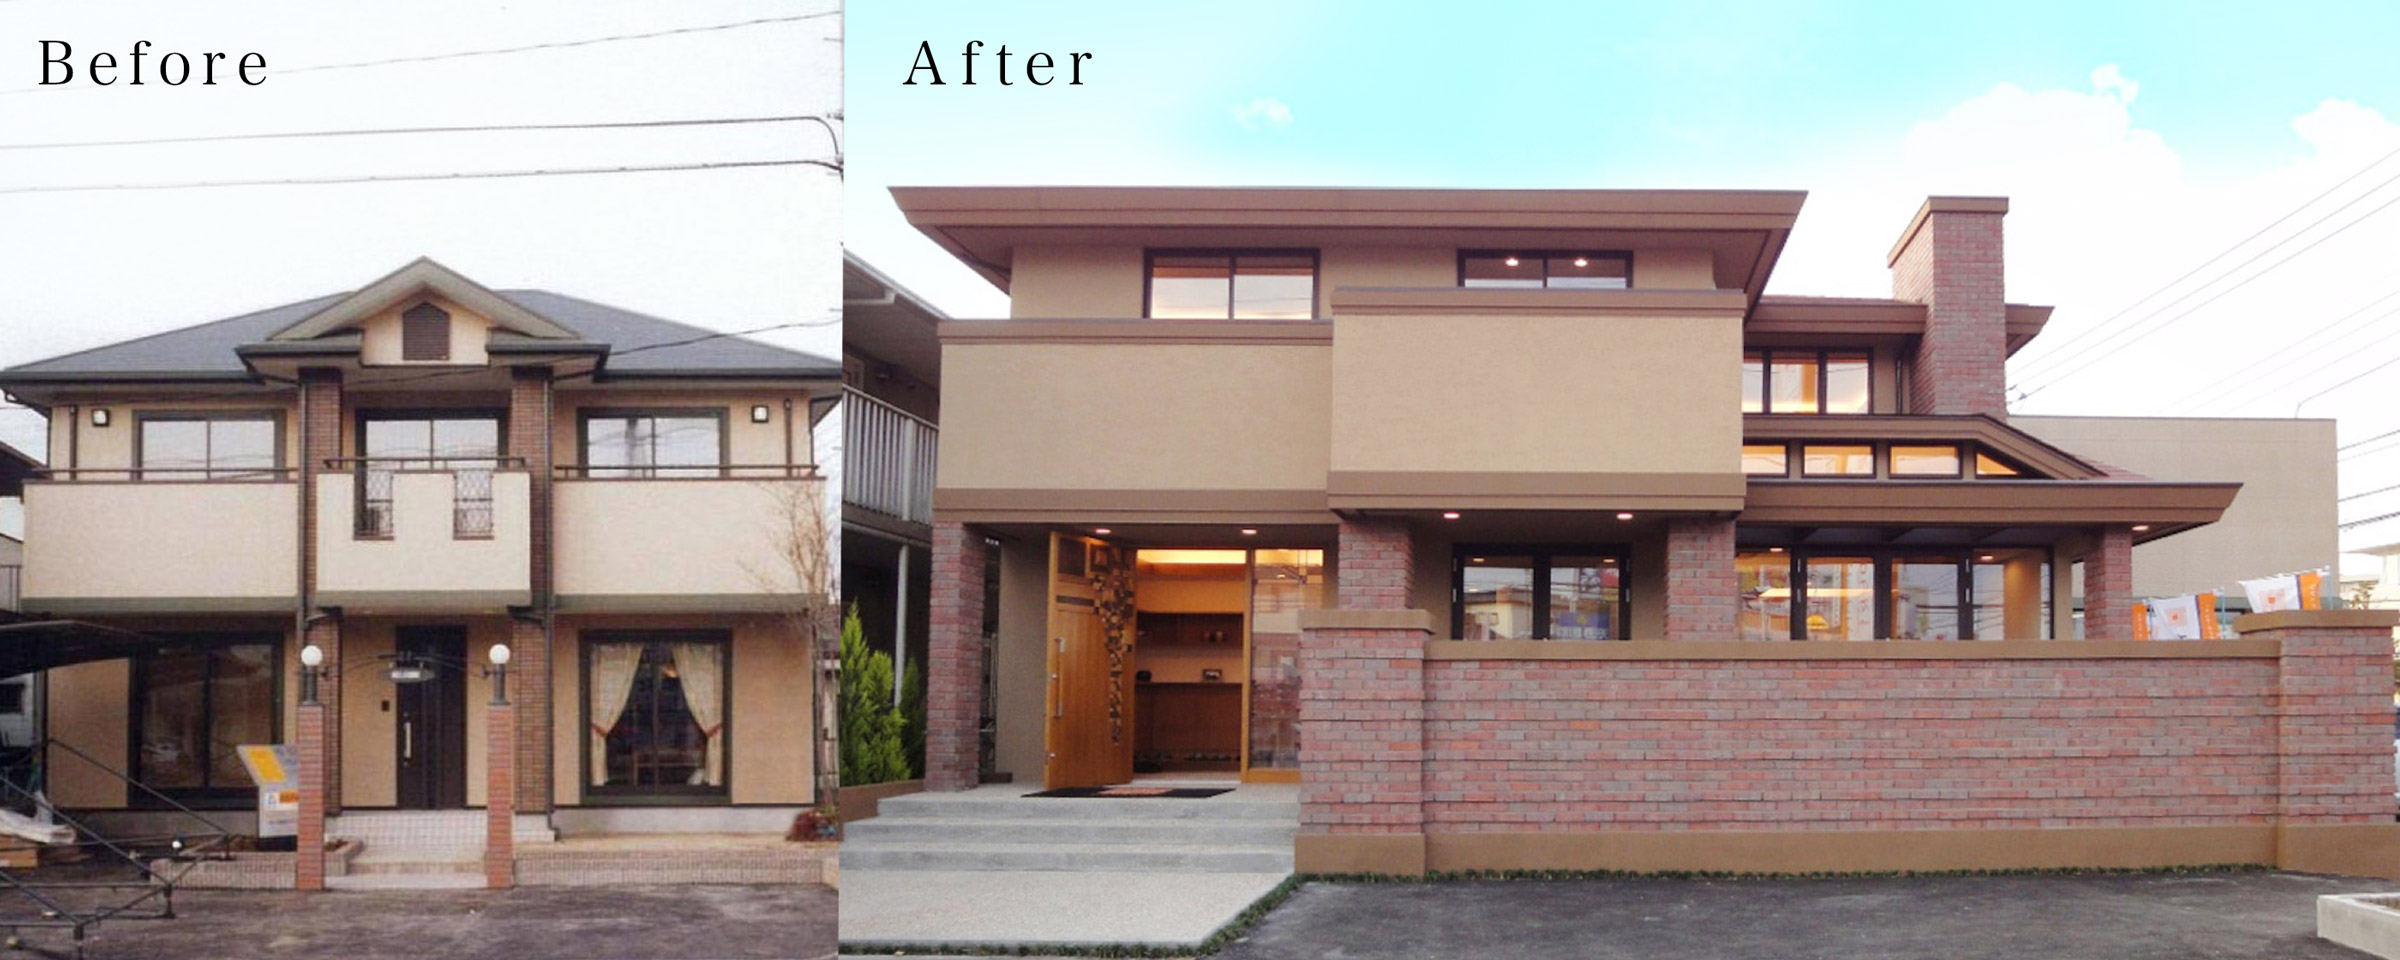 House:Before,After